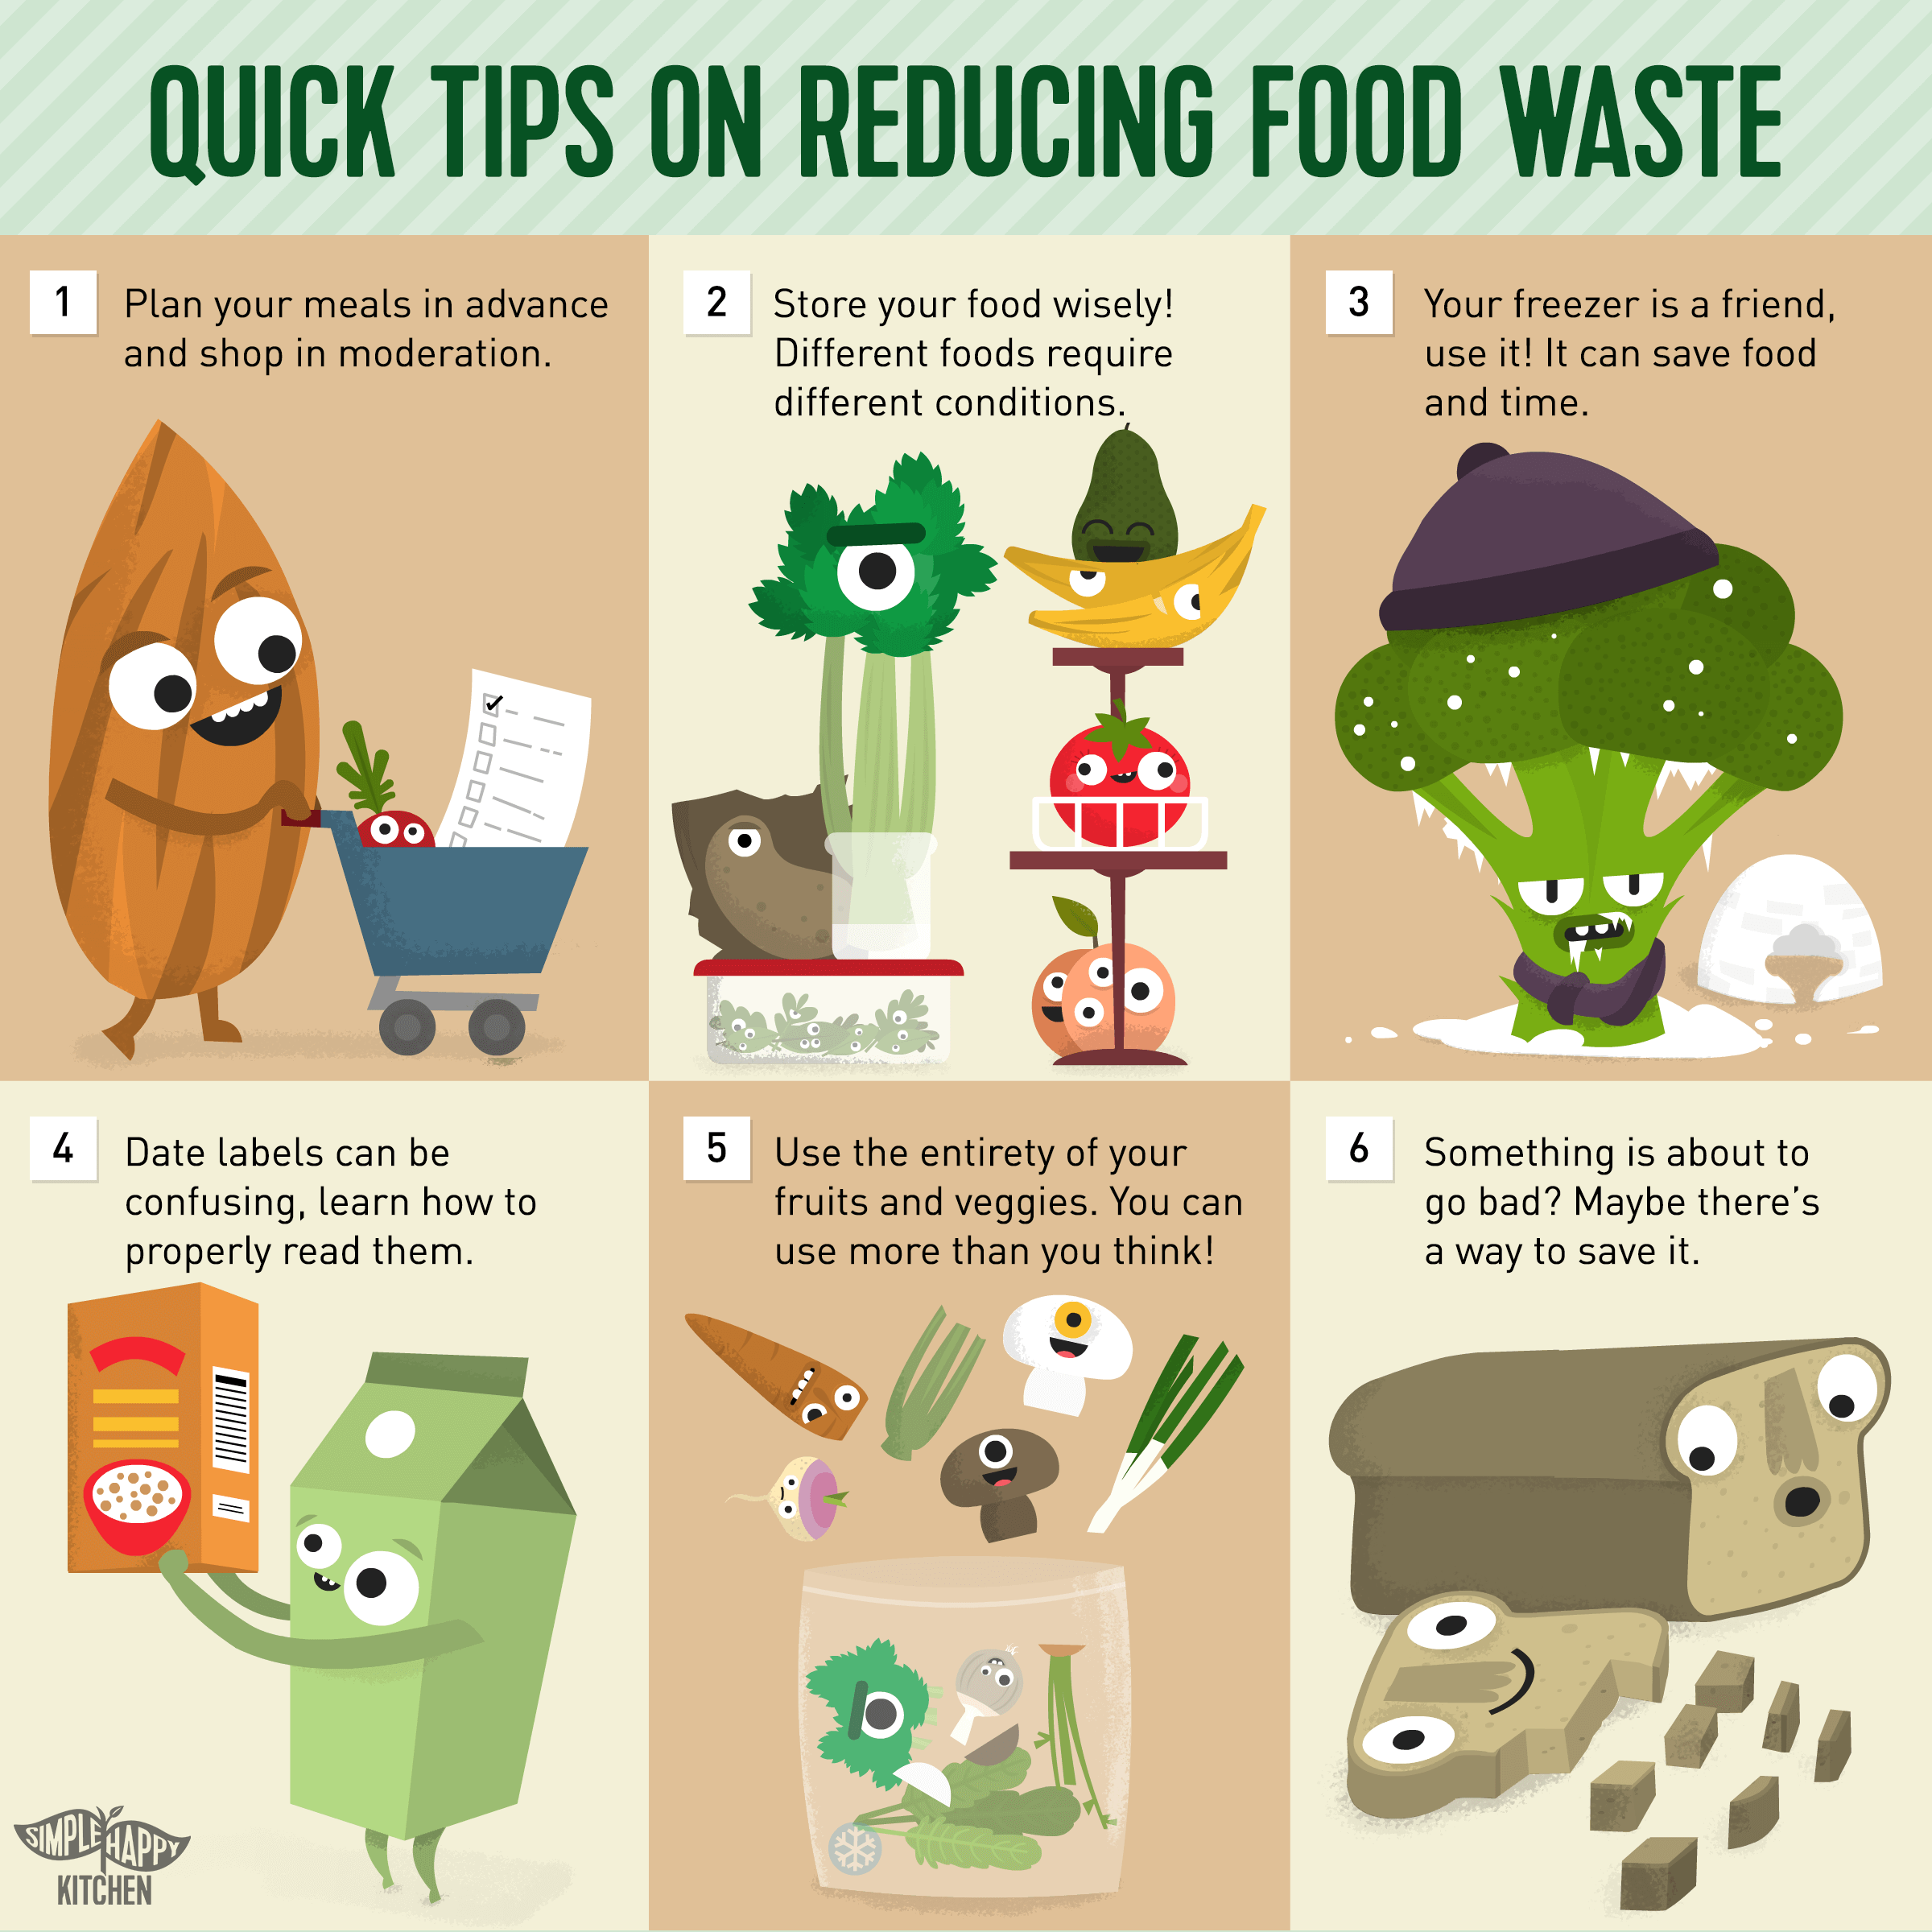 Food loss and waste is a global issue. Here are a few easy ways to fight it!